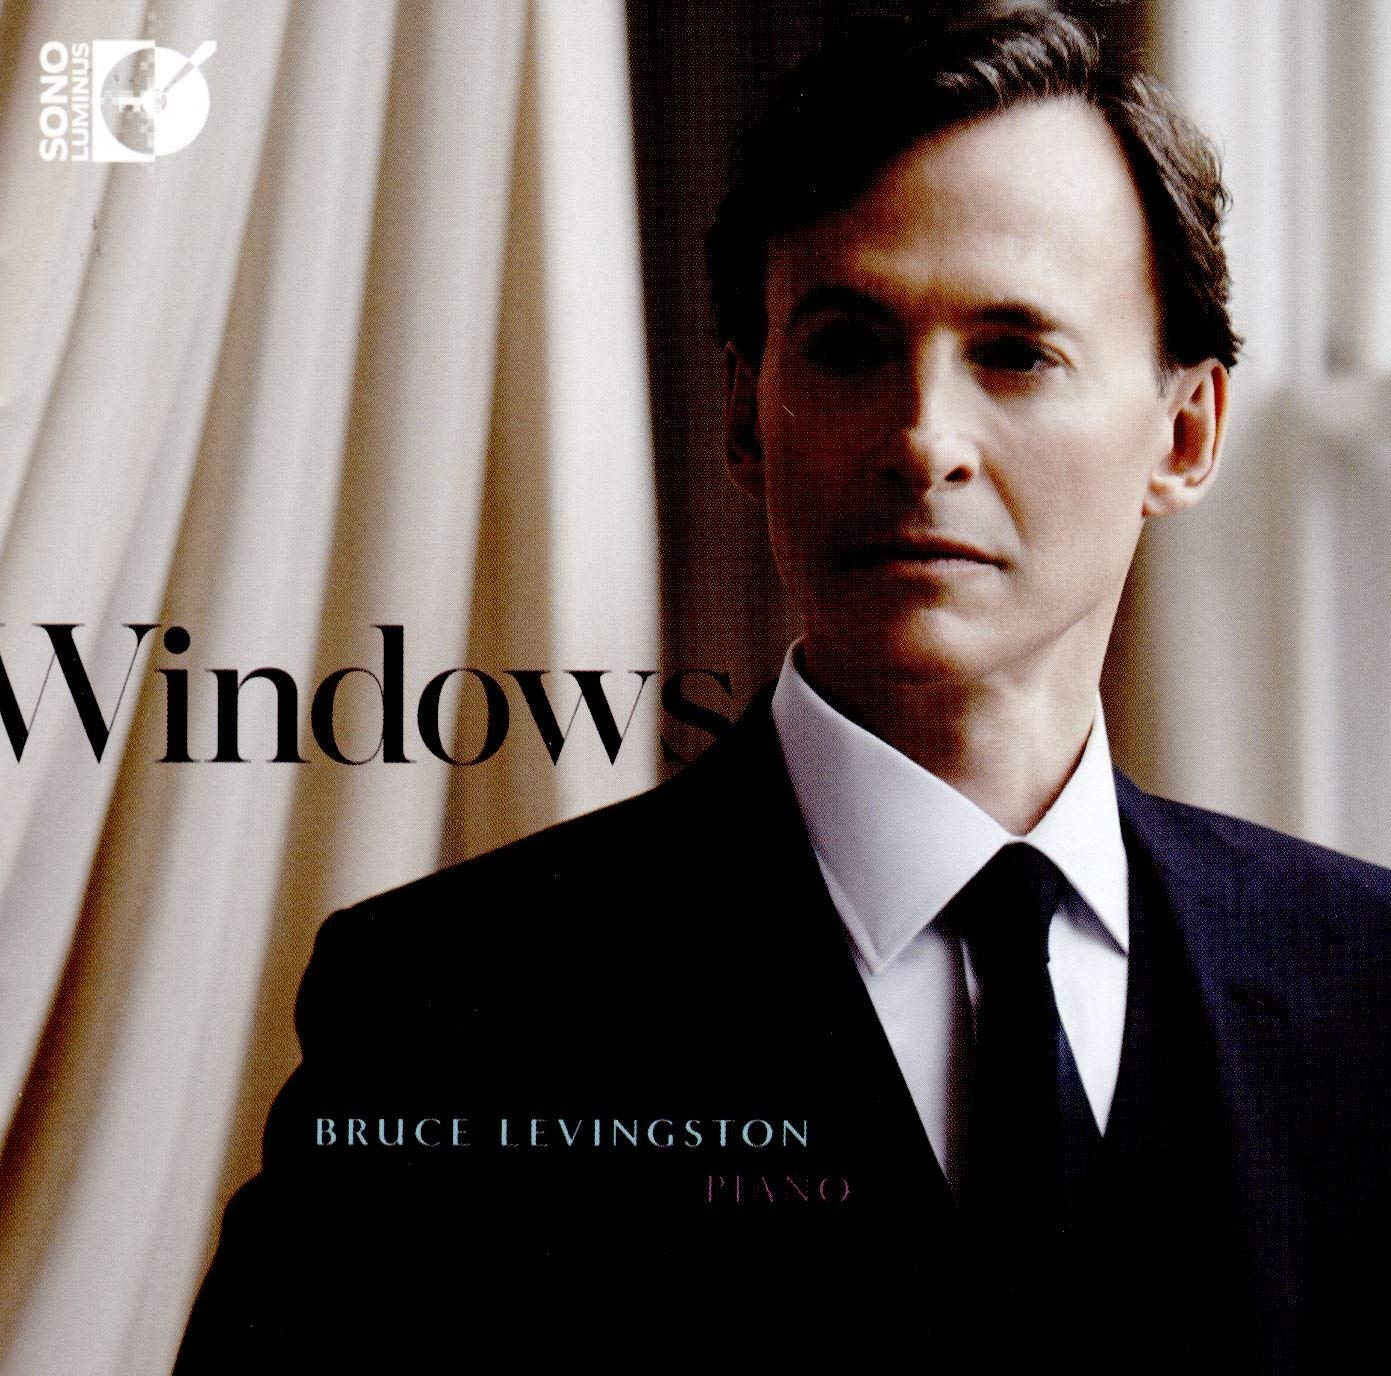 Bruce Levingston: Windows